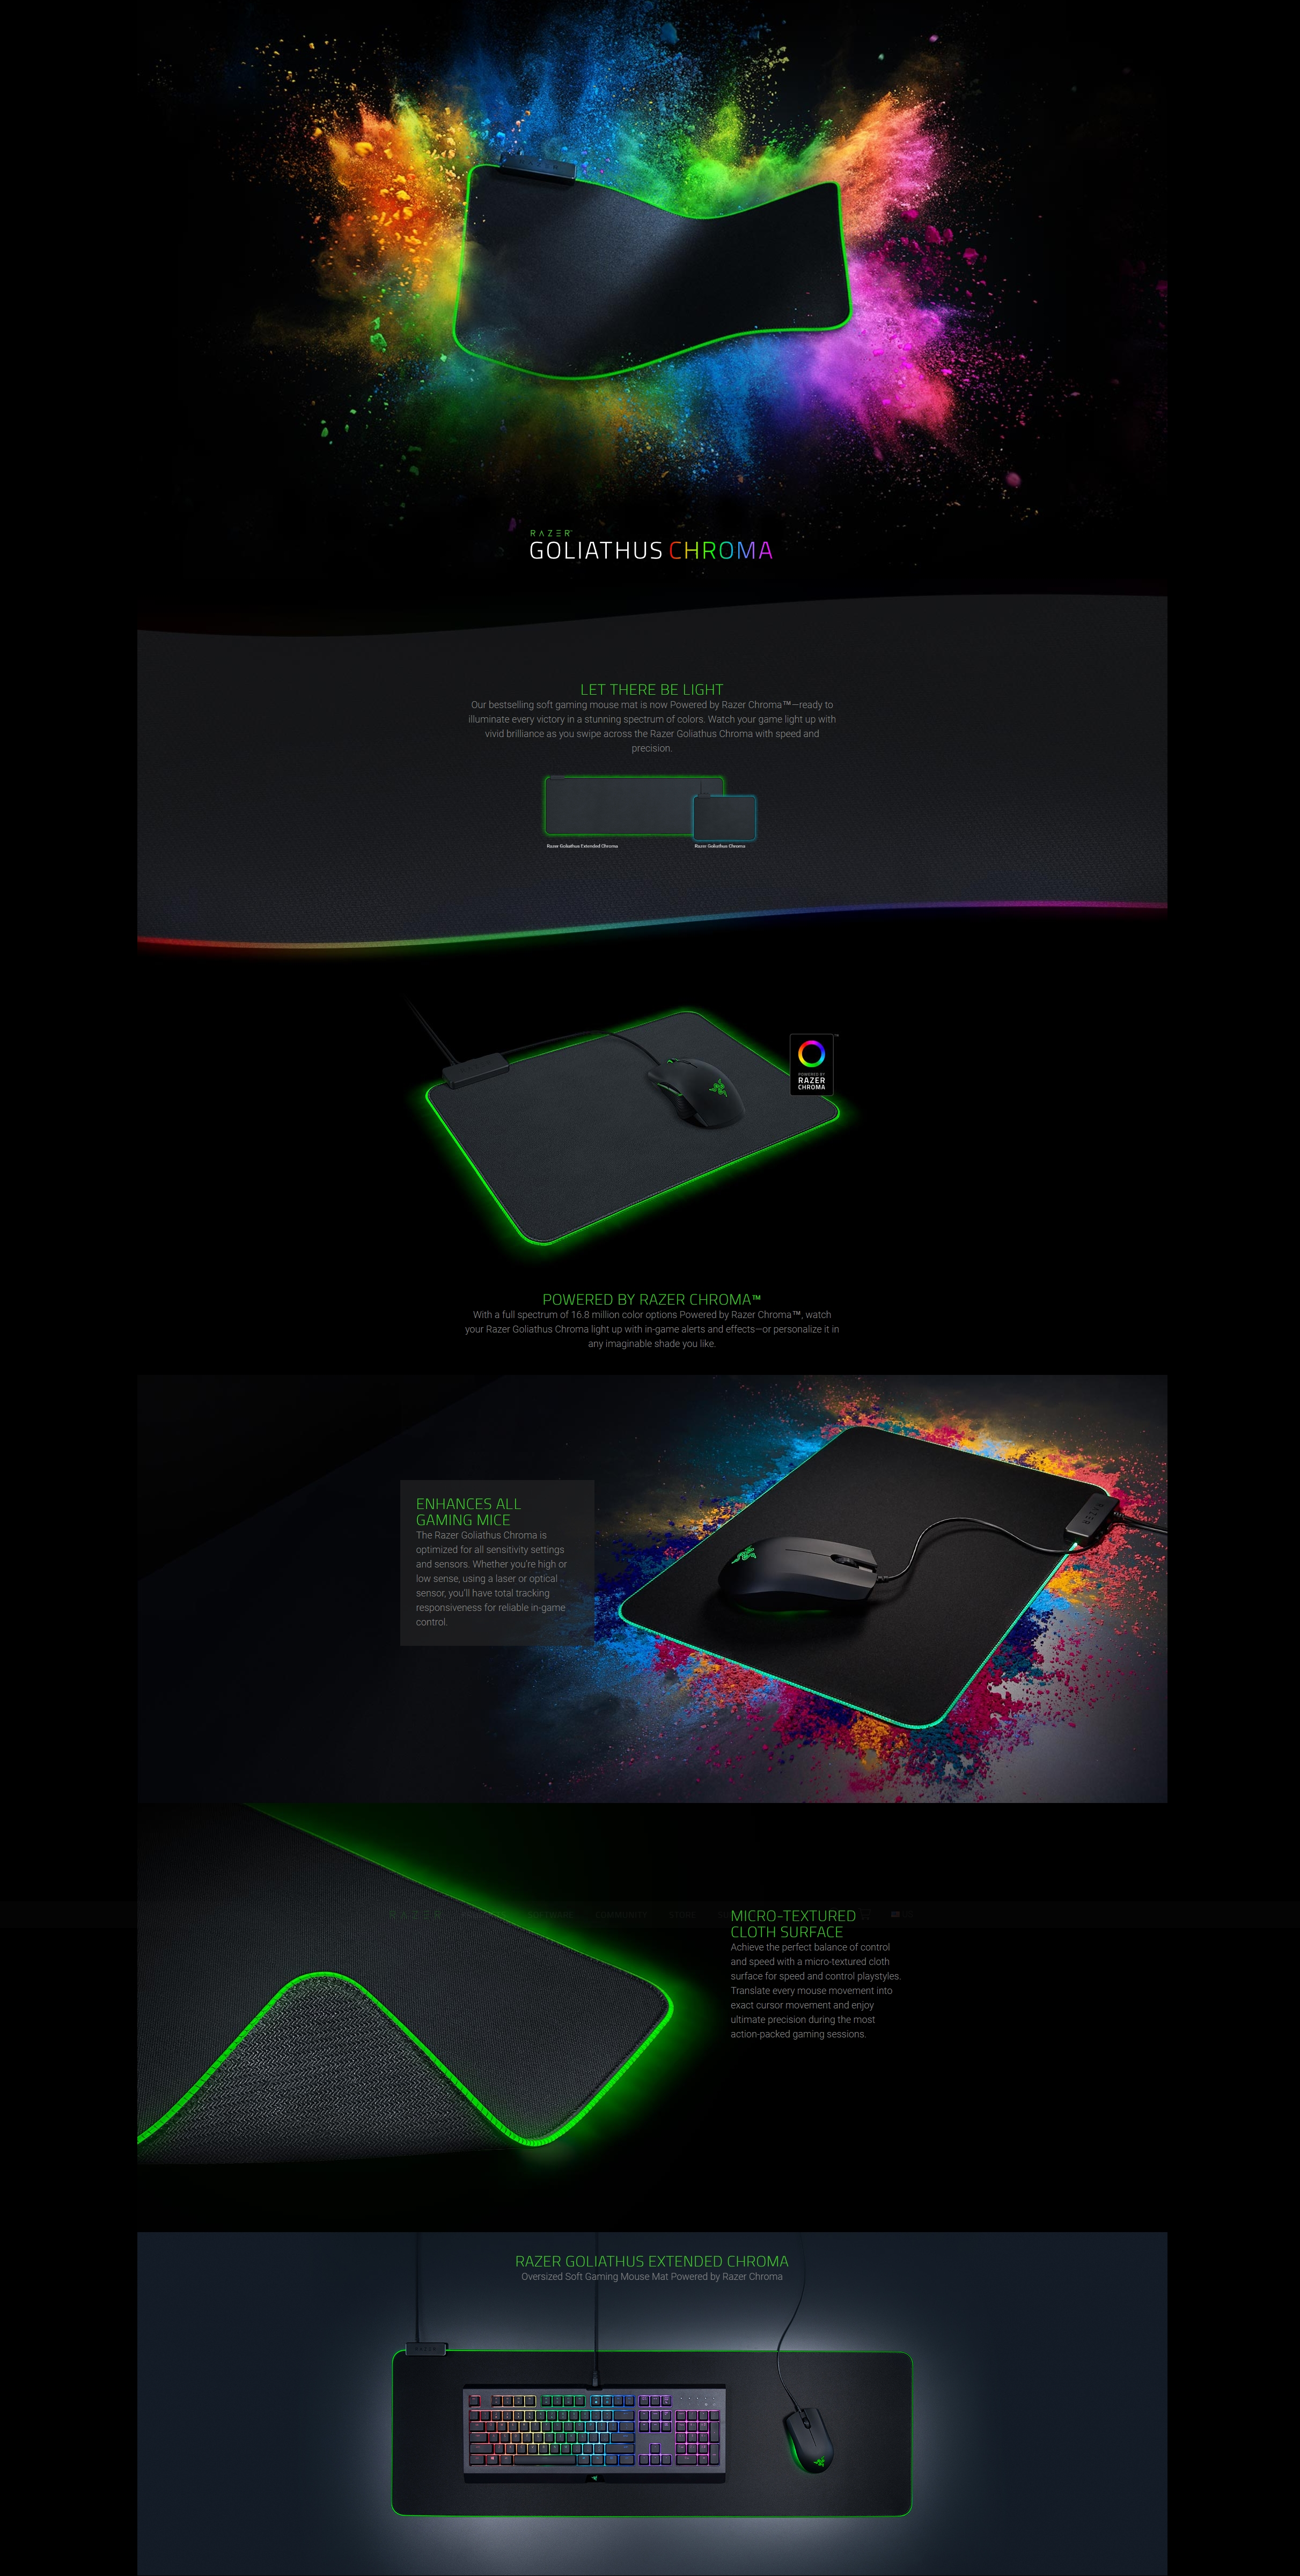 A large marketing image providing additional information about the product Razer Goliathus Chroma Mousemat Extended - Additional alt info not provided